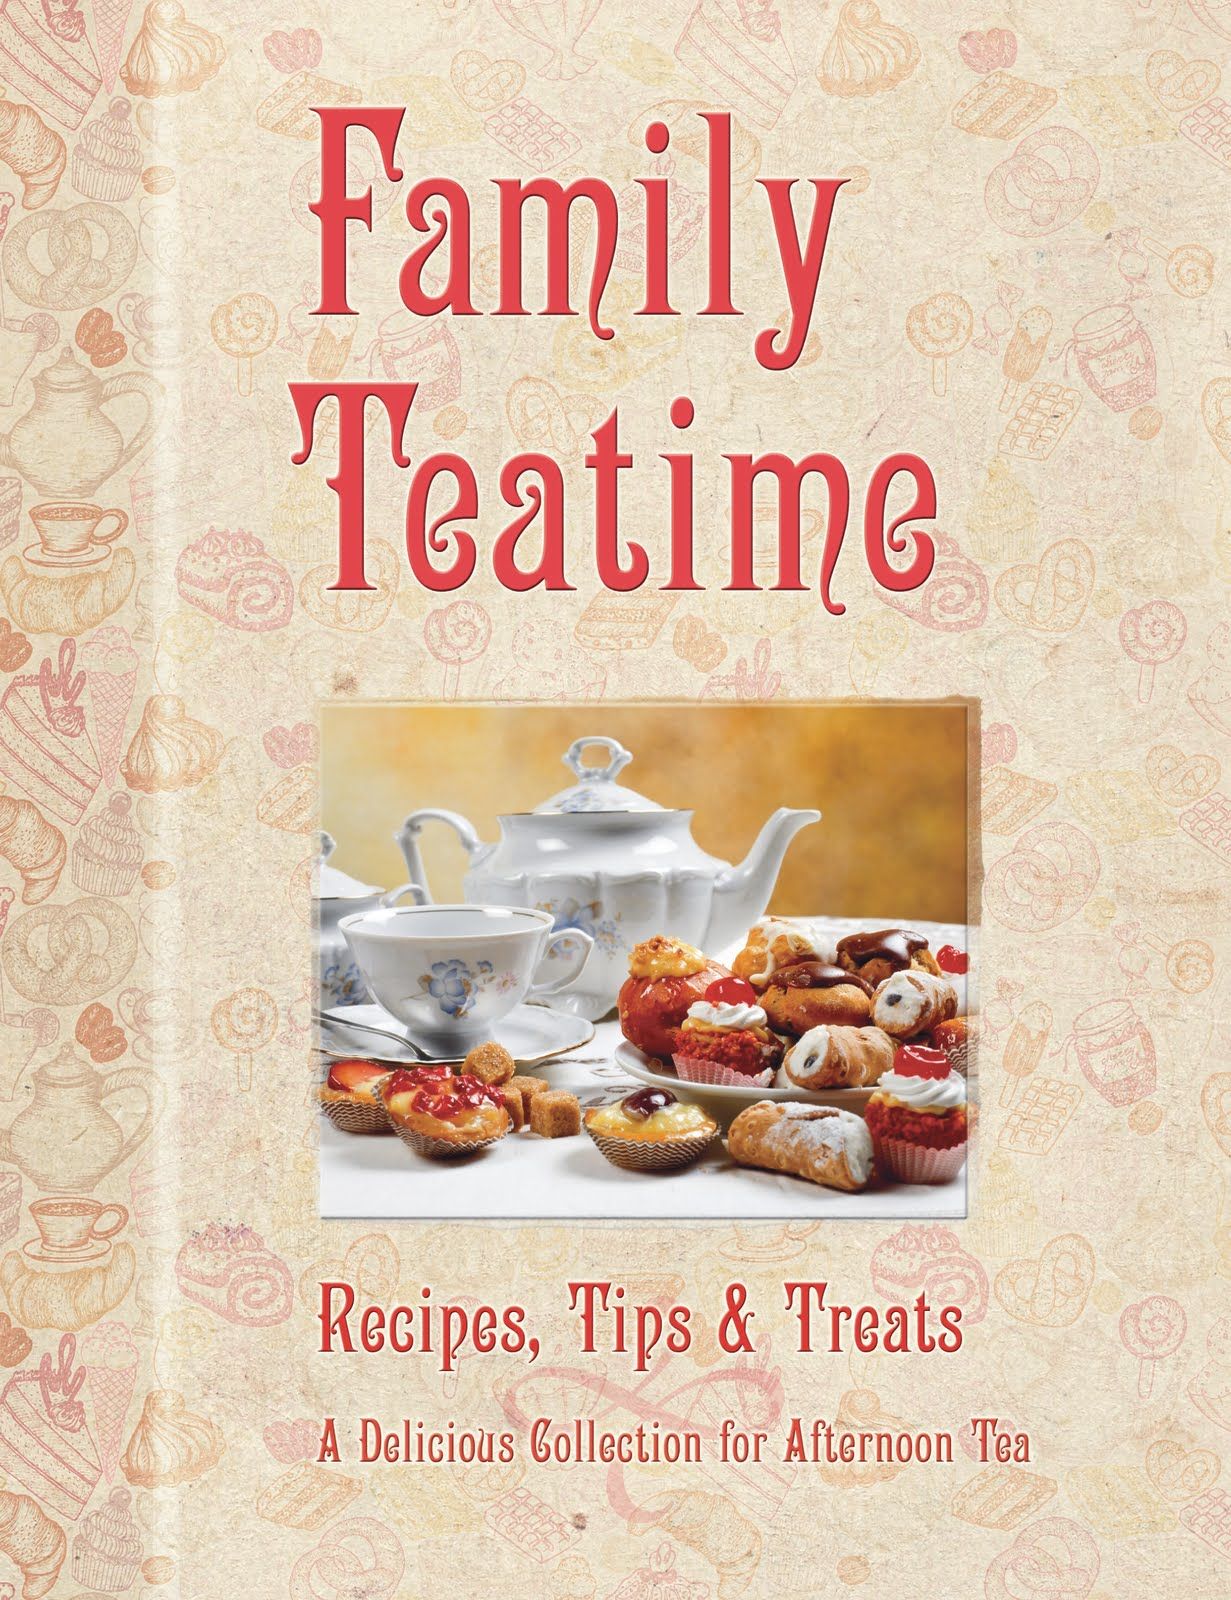 Traditional english puddings family teatime grandmas recipe treats delighted to be asked to review two really nice recipe books family teatime grandmas recipe treats have already made maple pecan lemon loaf from forumfinder Image collections